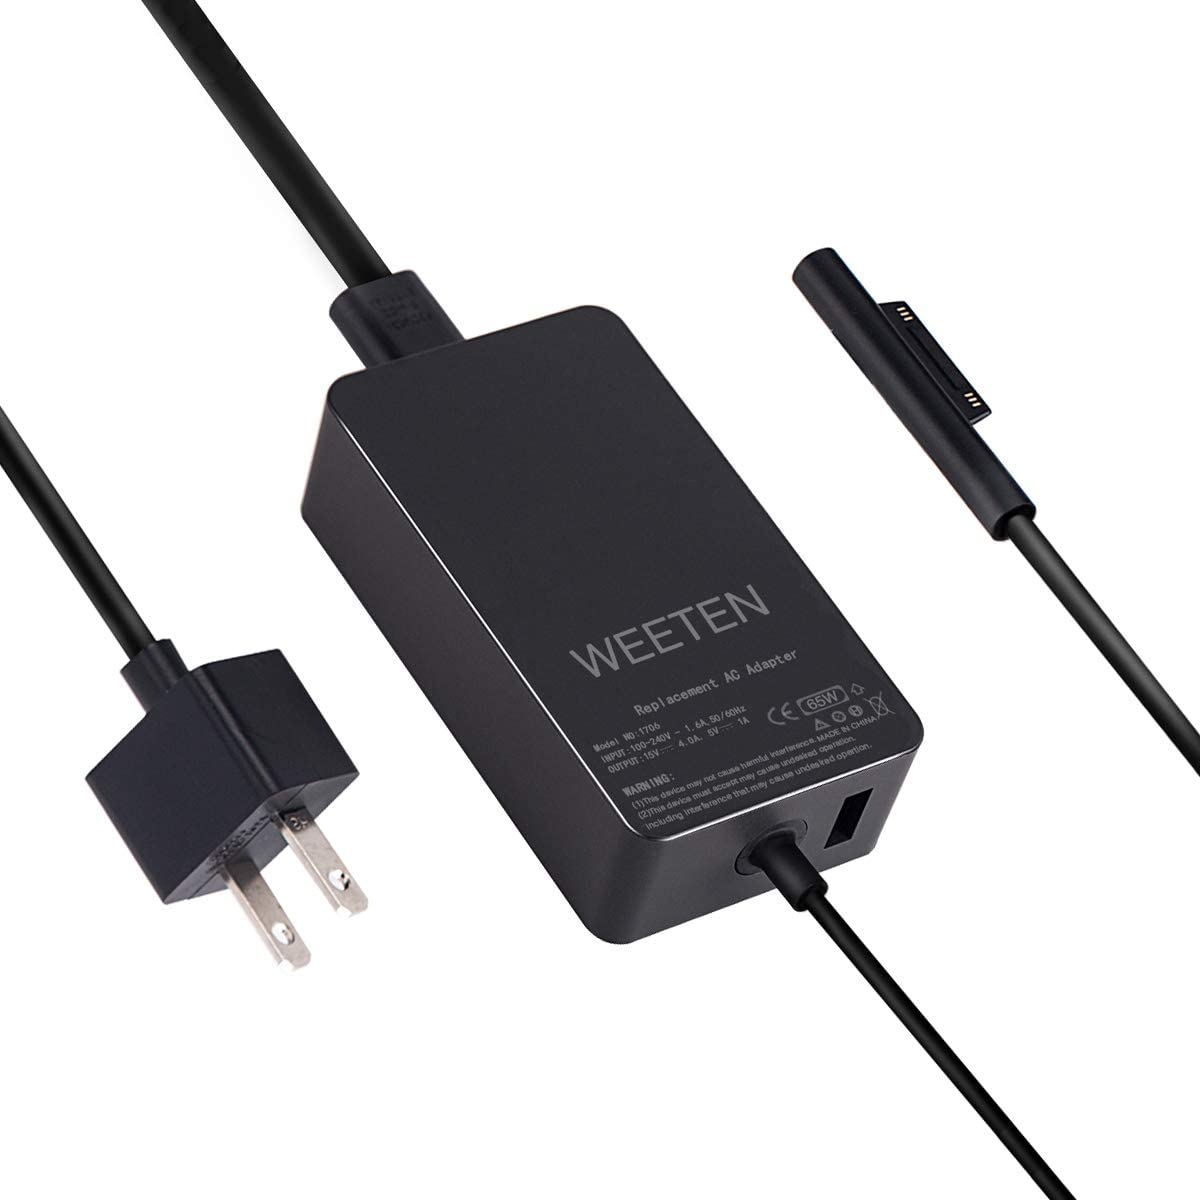 WEETEN 65W 15V 4A Surface Power Supply Compatible with Microsoft Surface Pro 3 Pro 4 Pro 5 Pro 6, Surface Book 1 Surface Laptop, Surface Go, Replacement AC Adapter Charger Cord 1706